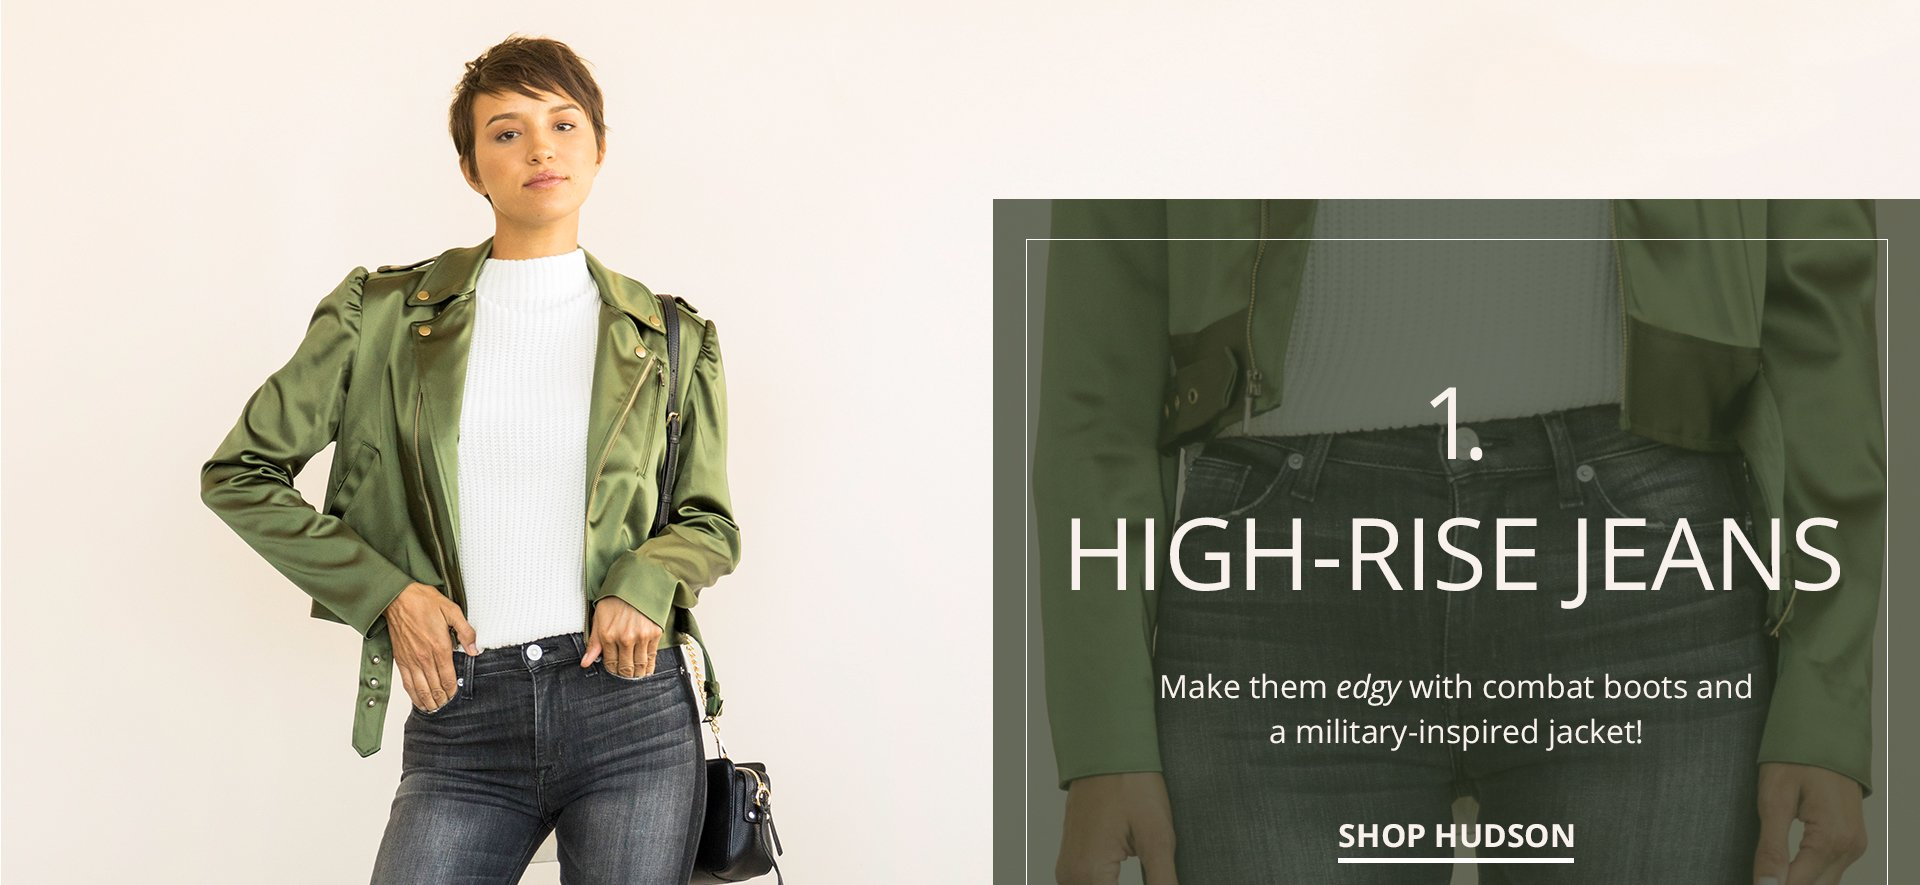 High-rise jeans. Make them edgy with combat boots and a military-inspired jacket! Shop Hudson.